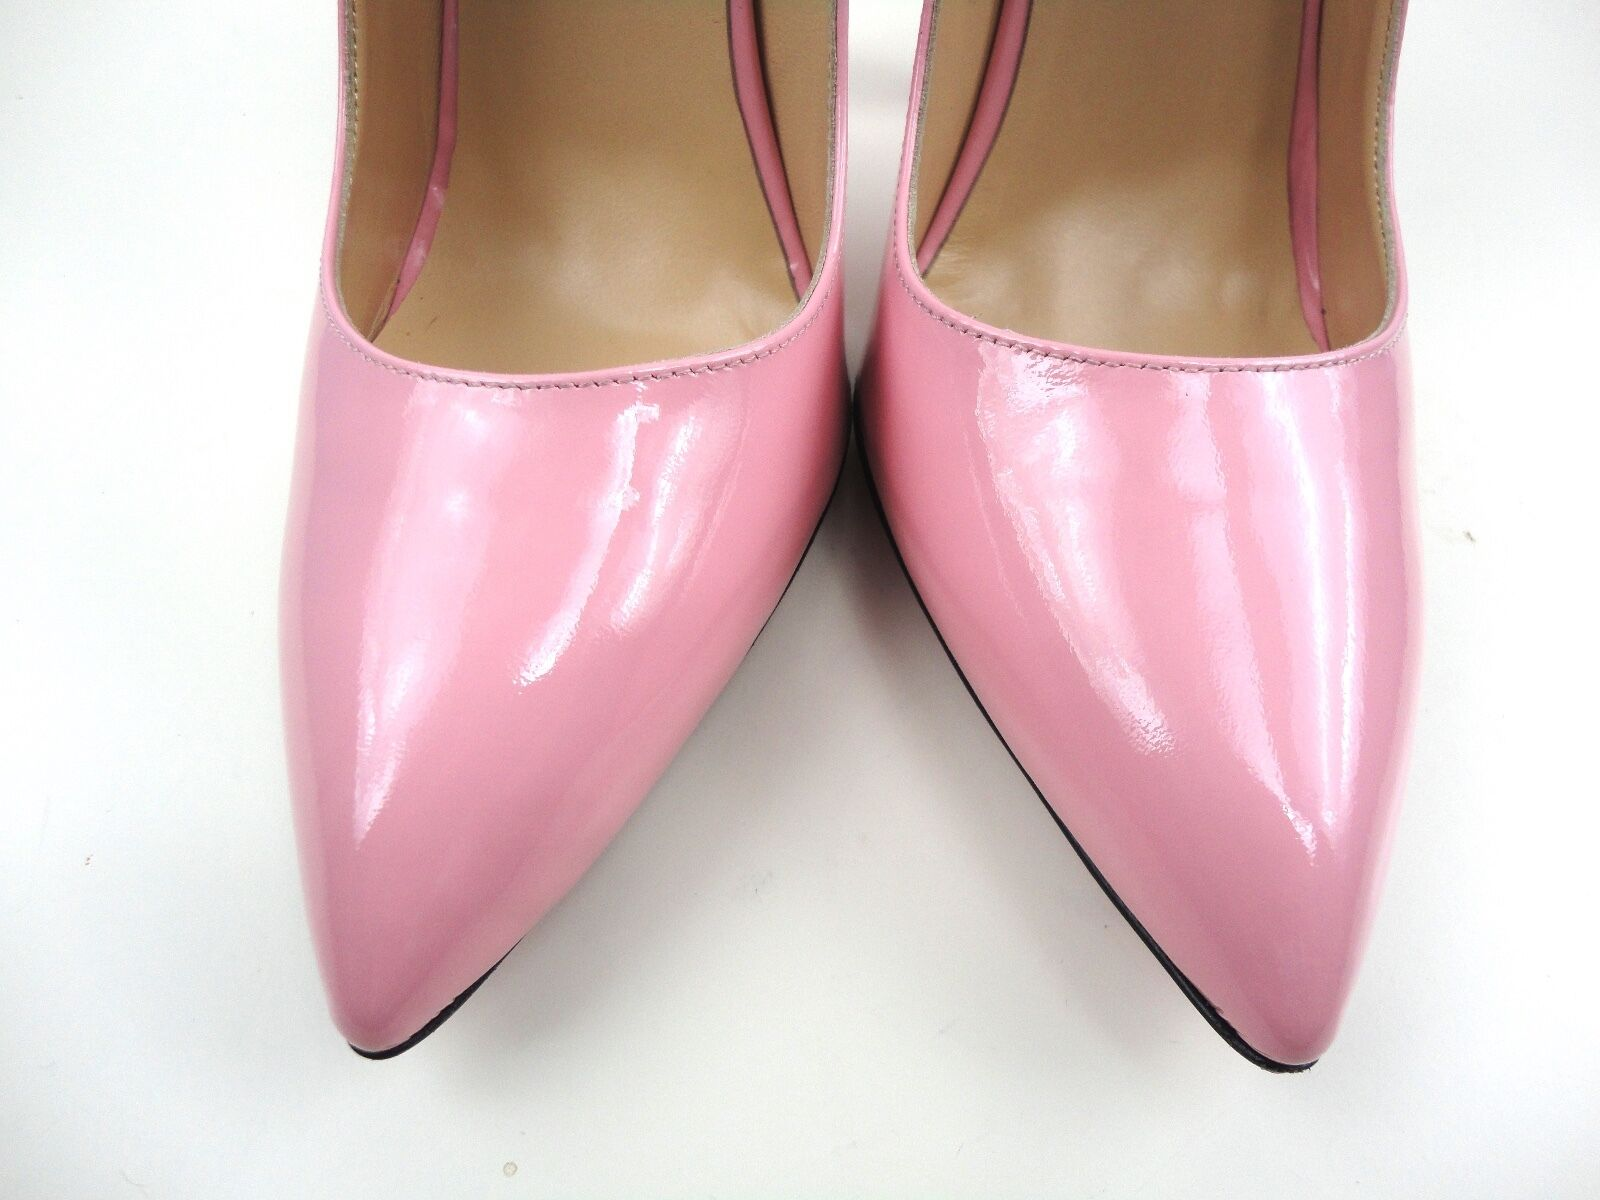 CQ COUTURE EXTREME HIGHEST HEEL PUMPS SCHUHE SCHUHE SCHUHE COURT SHOES PATENT LEATHER PINK 36 b93a66